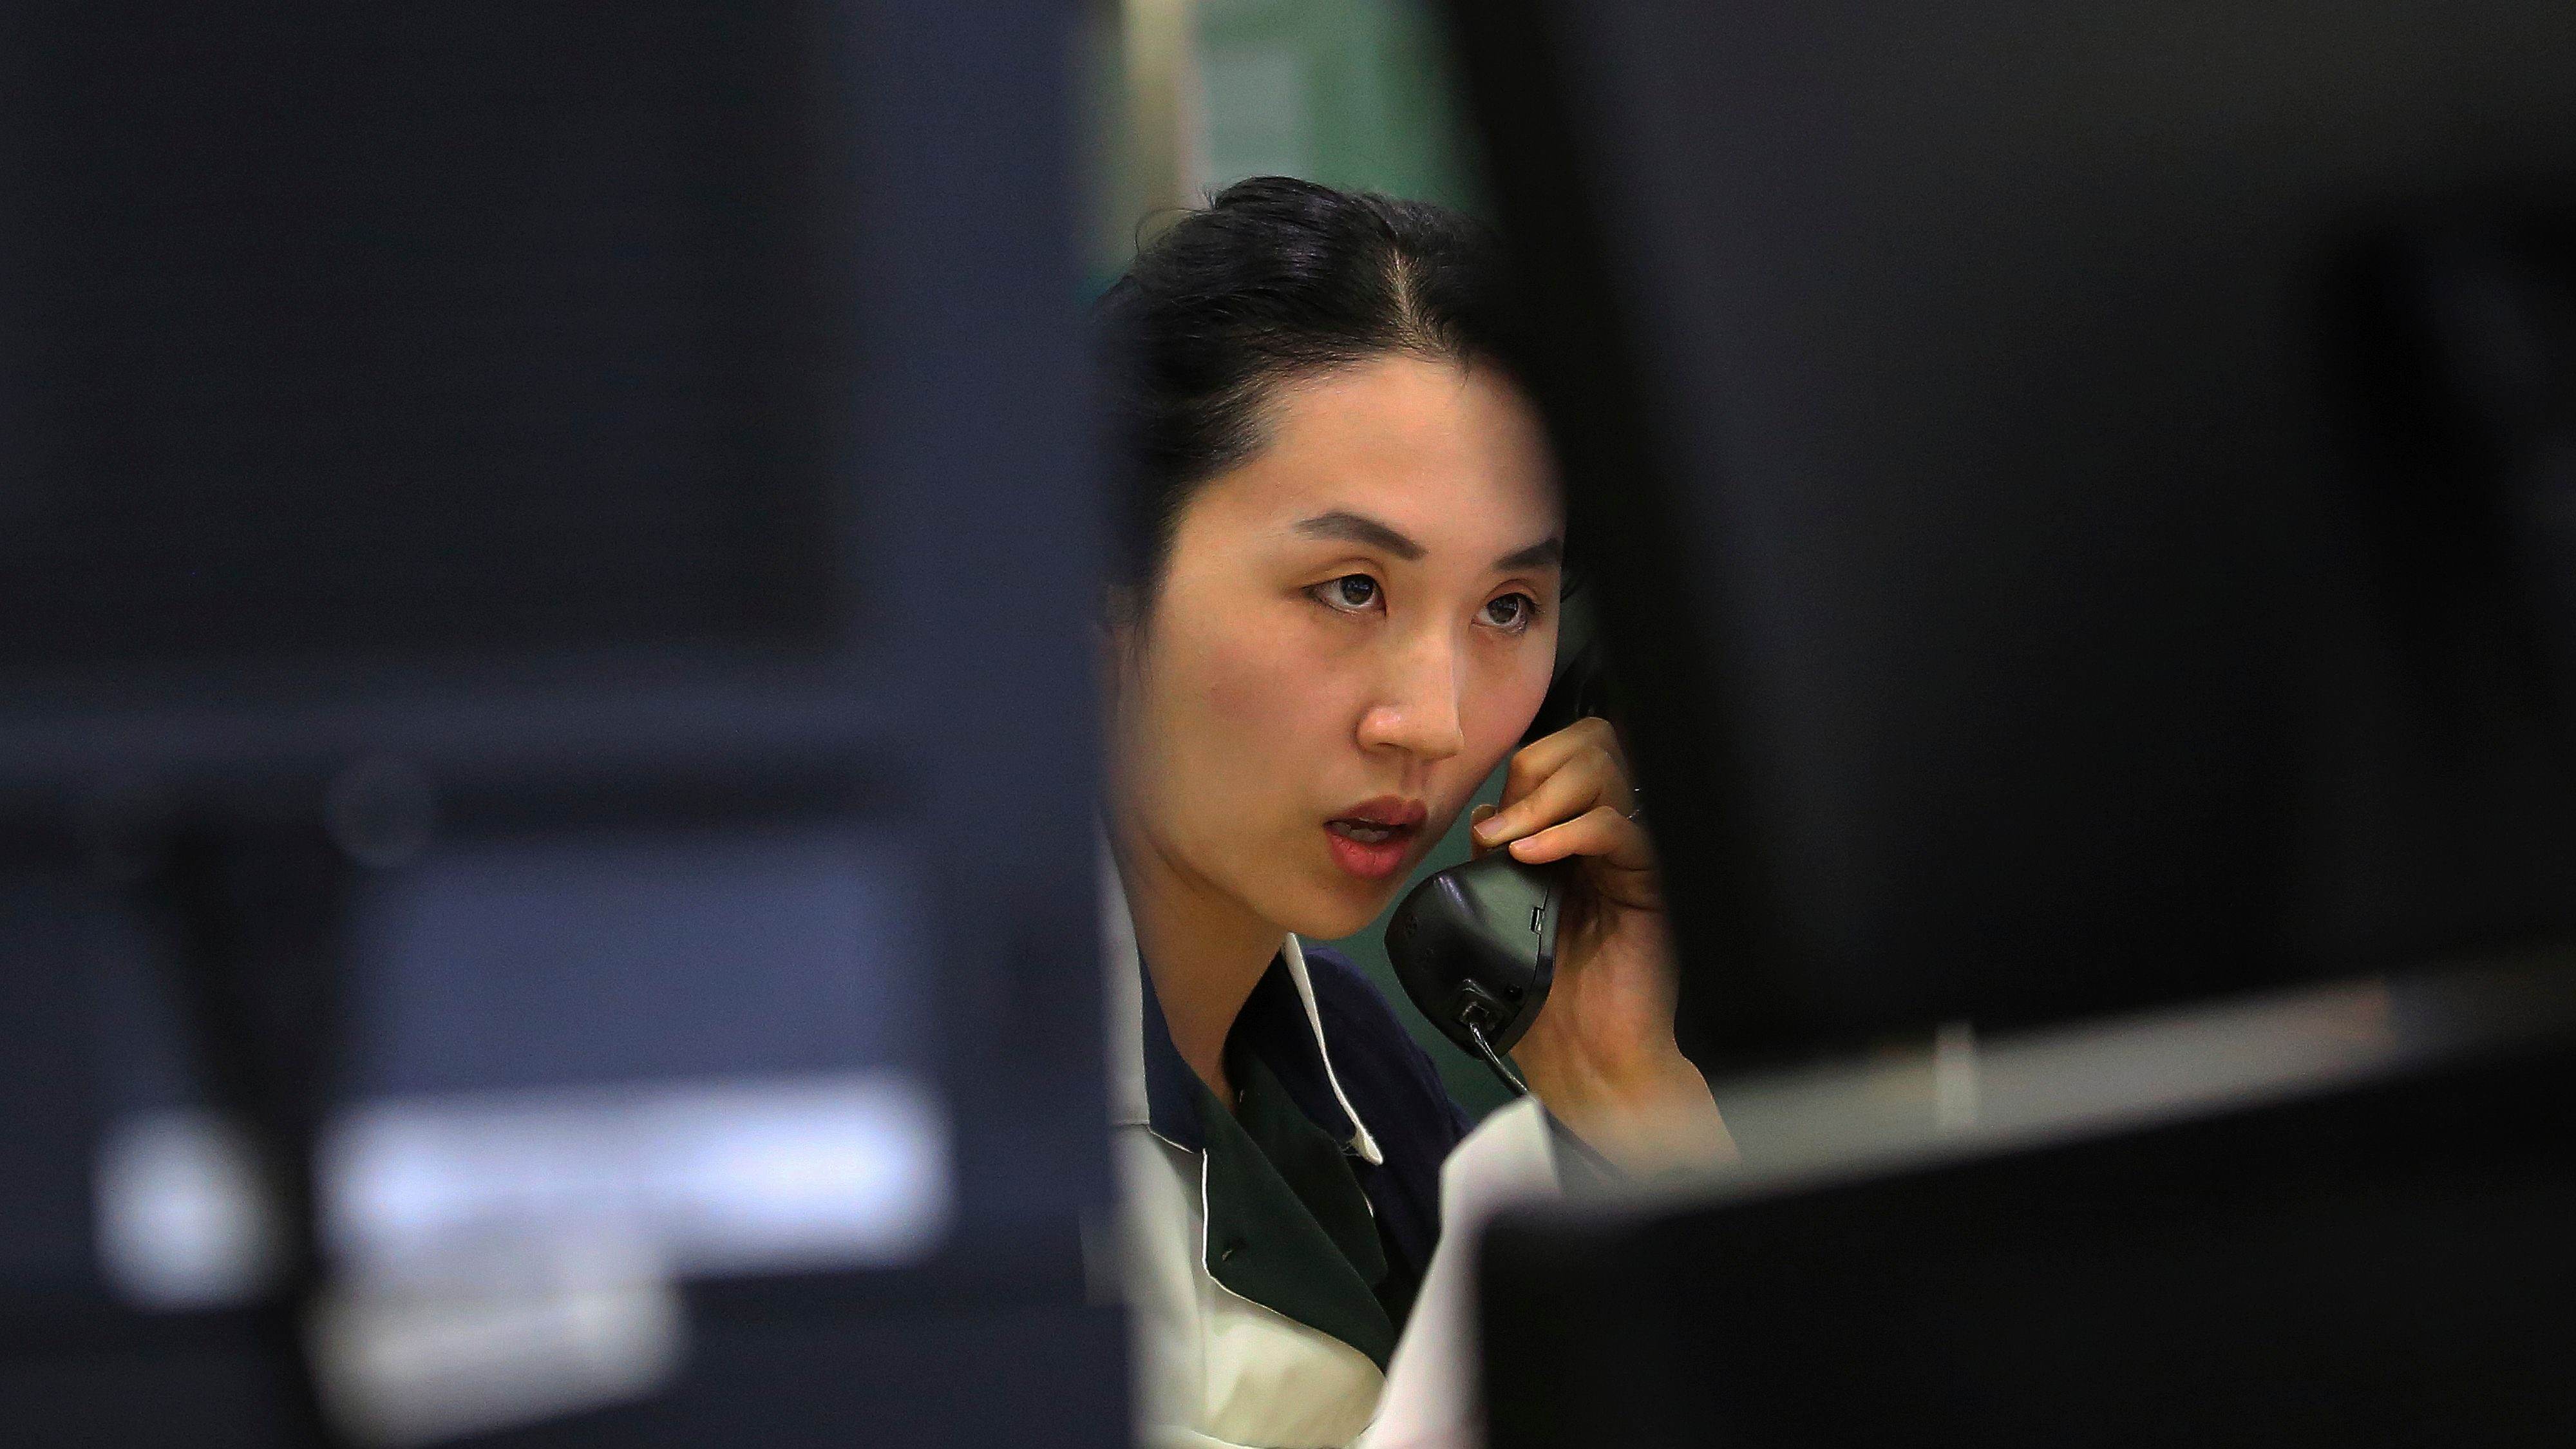 A currency trader talks on the phone at the foreign exchange dealing room of the KEB Hana Bank headquarters in Seoul, South Korea, Monday, June 5, 2017. Asian stock markets were mixed on Monday following the London attack over the weekend and a private survey showing improvement in China's service sector. Stocks moved within a narrow range ahead of the week packed with political events and economic data from the United Kingdom's elections to China's export data. (AP Photo/Ahn Young-joon)